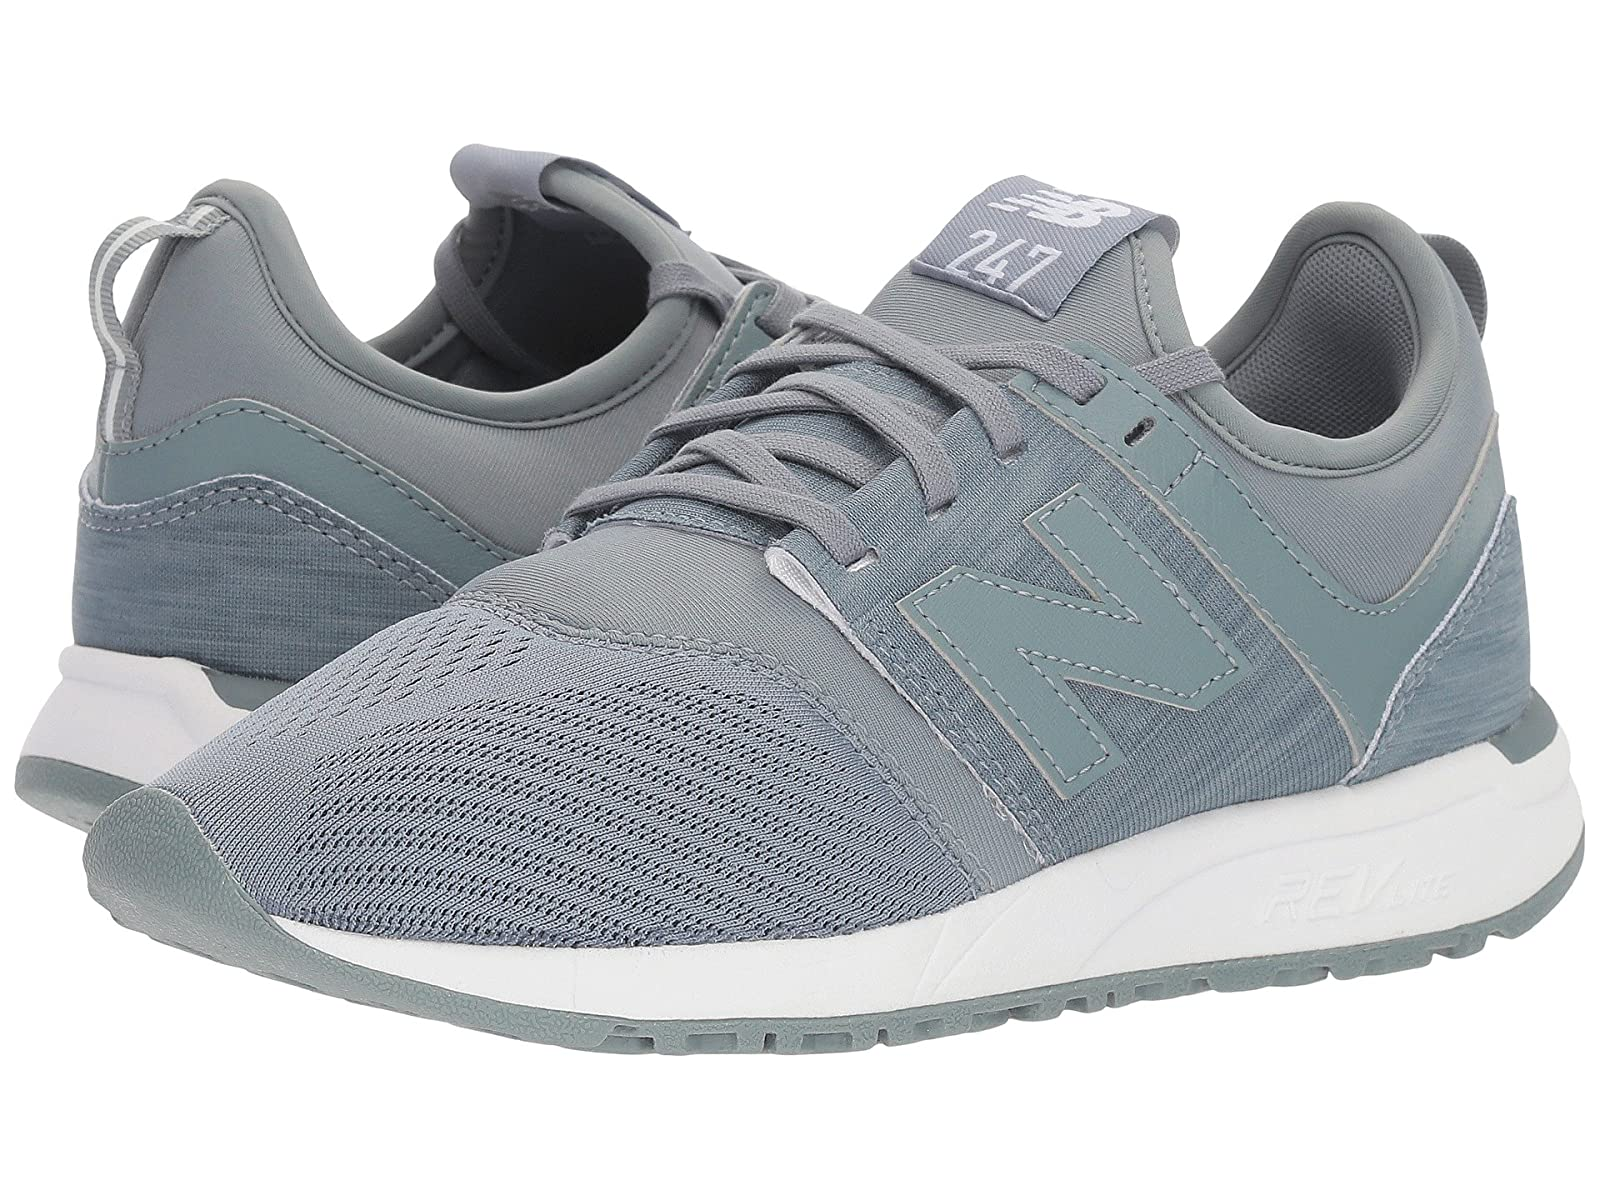 New Balance Classics WRL247v1Cheap and distinctive eye-catching shoes